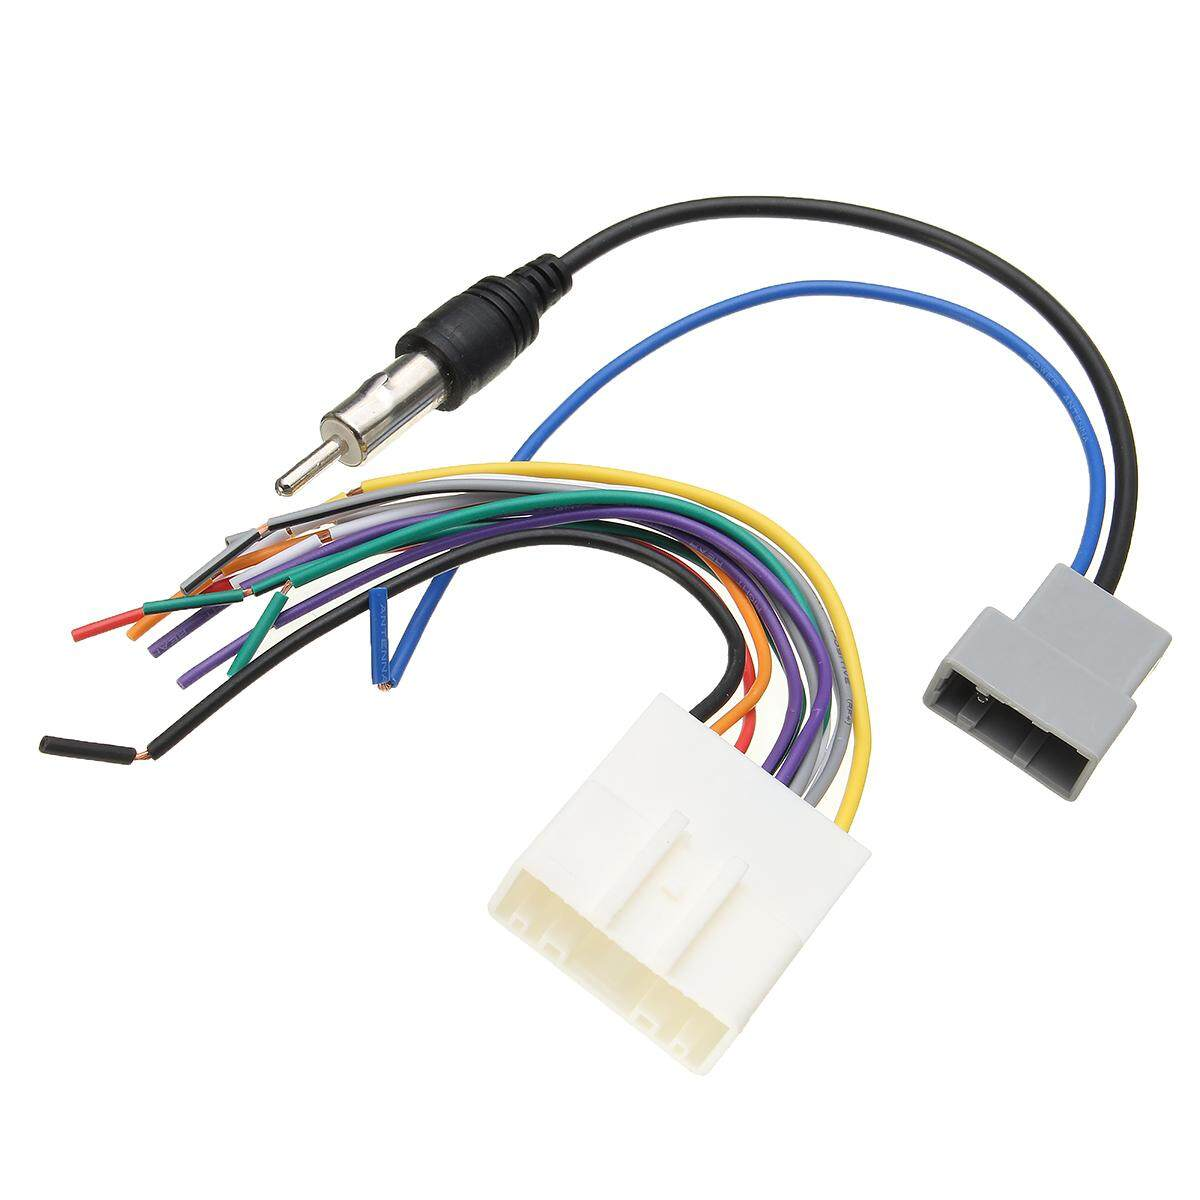 hight resolution of product details of 16cm car dvd install stereo wire harness cable plugs antenna adapter for nissan